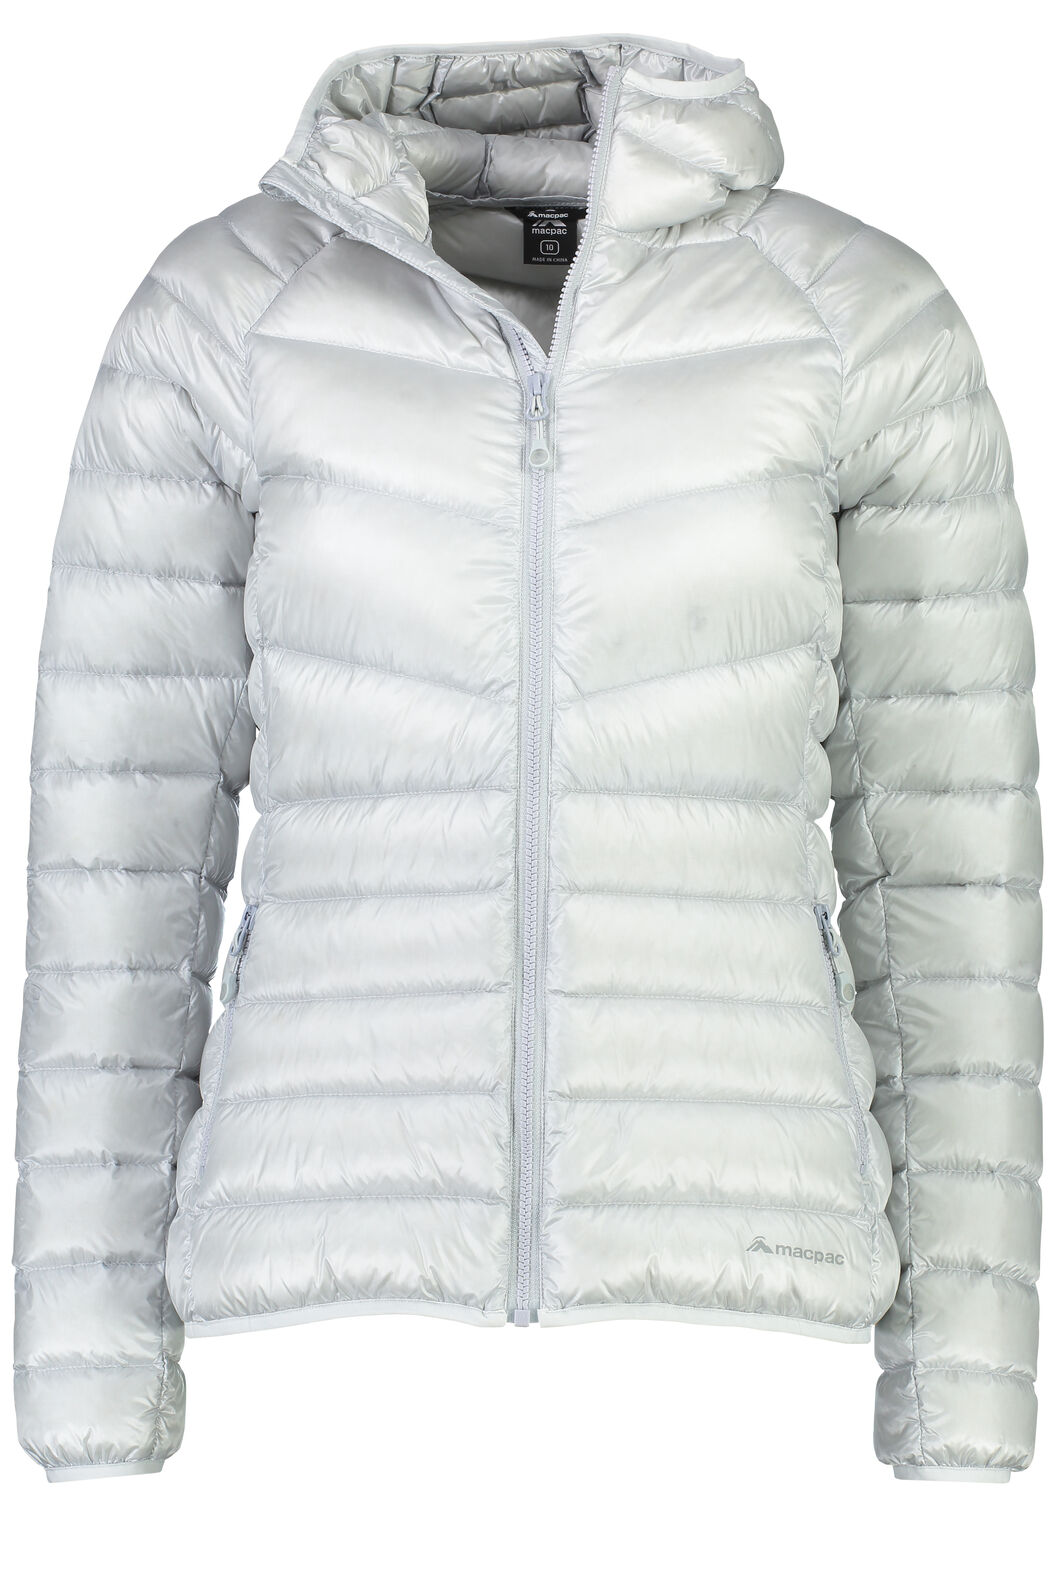 Macpac Mercury Down Jacket - Women's, Pearl, hi-res